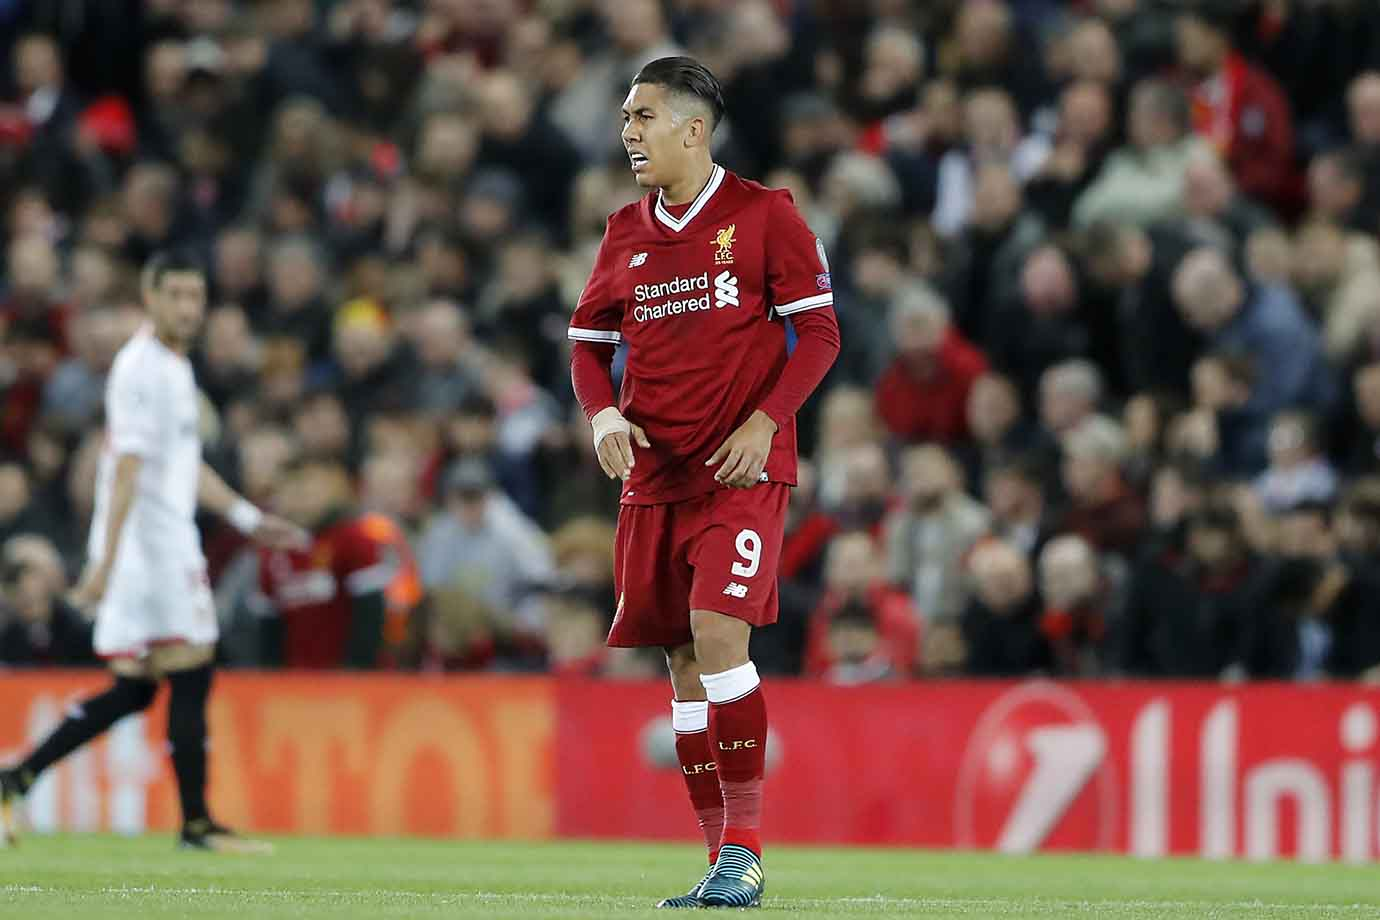 Roberto Firmino scored but also missed a penalty for Liverpool against Sevilla.